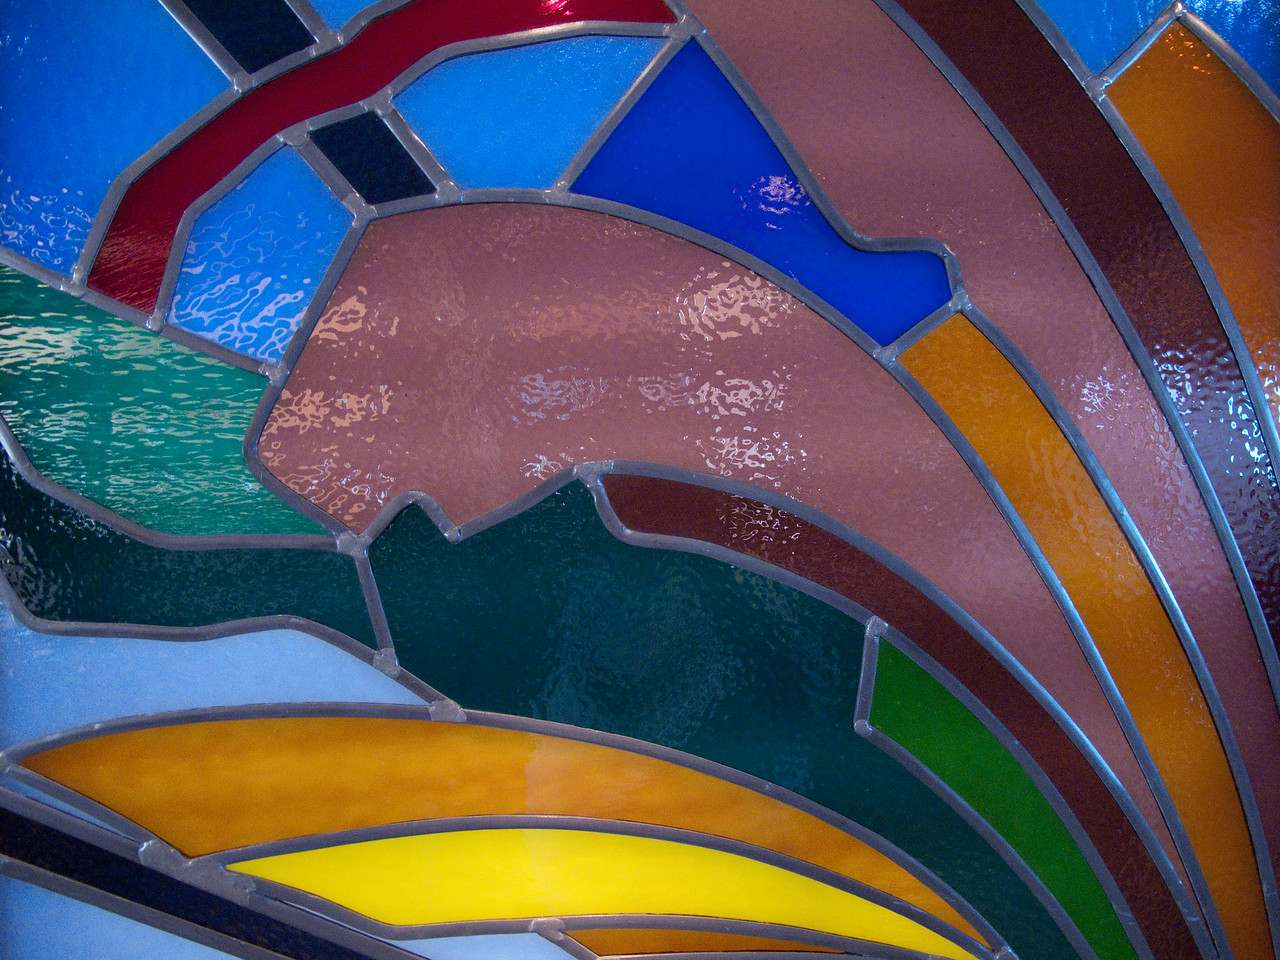 Stained glass at the head of a staircase on Enchantment.